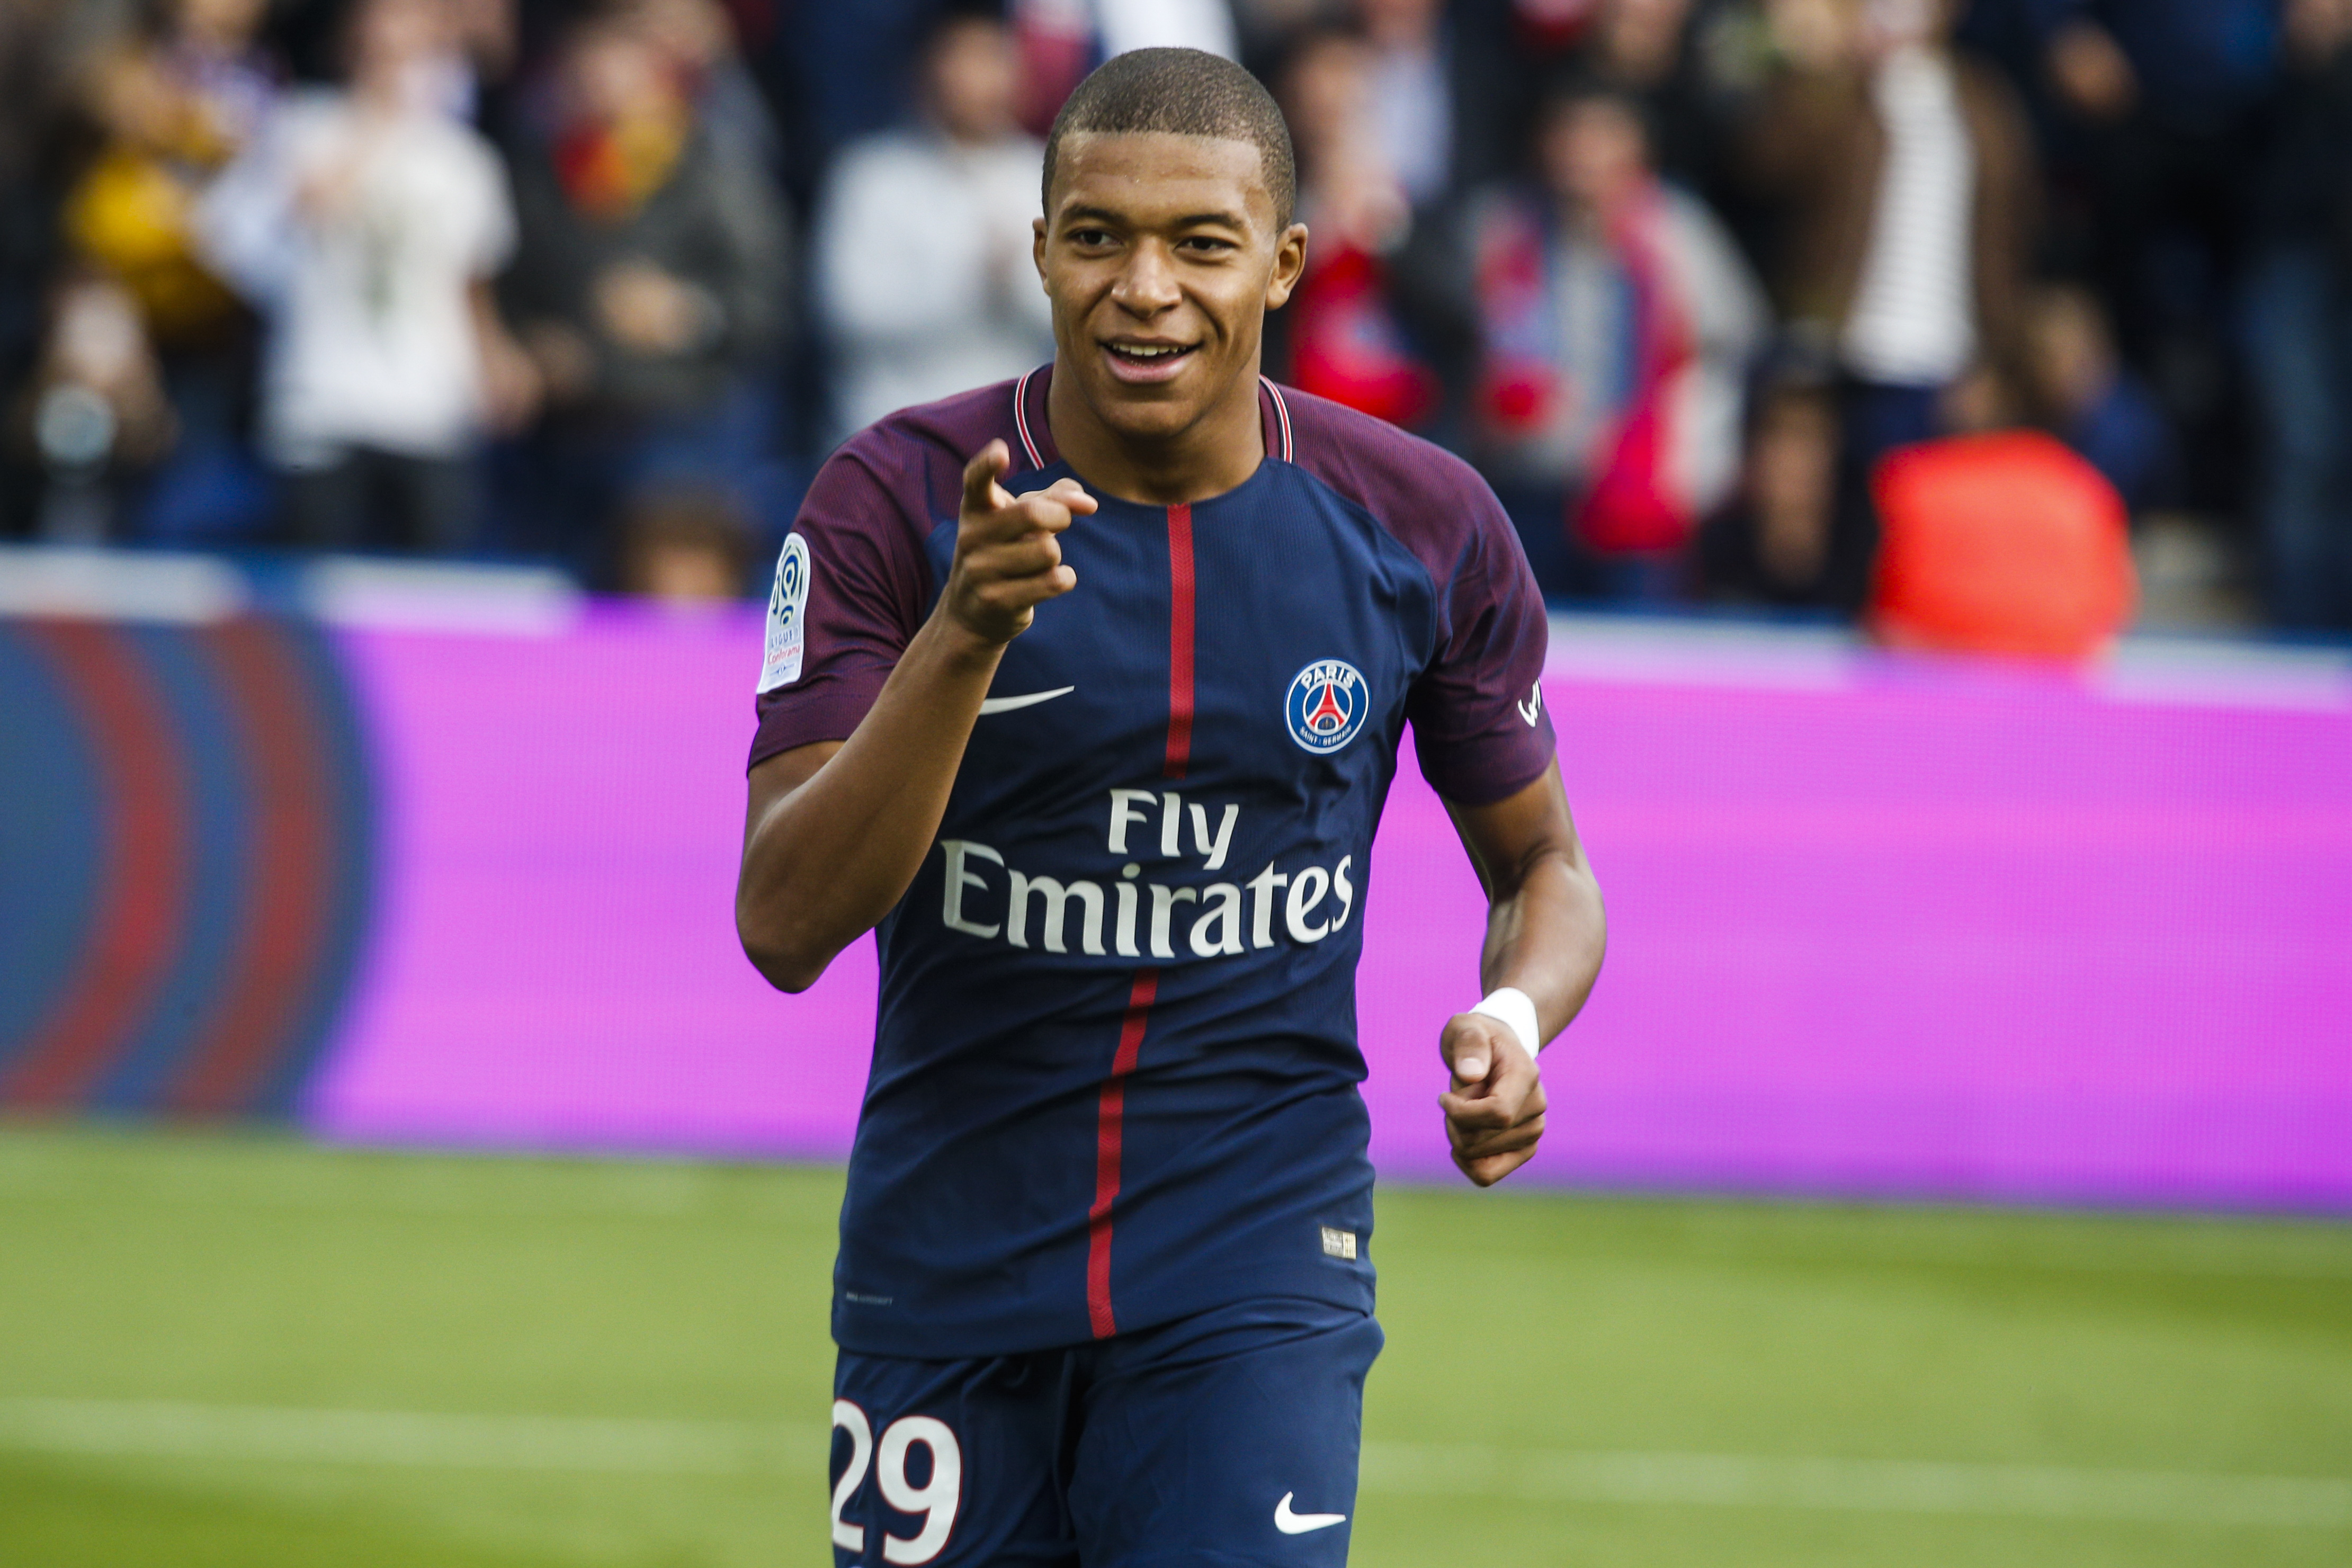 RB Leipzig nearly  signed Kylian Mbappe in 2015, reveals club director